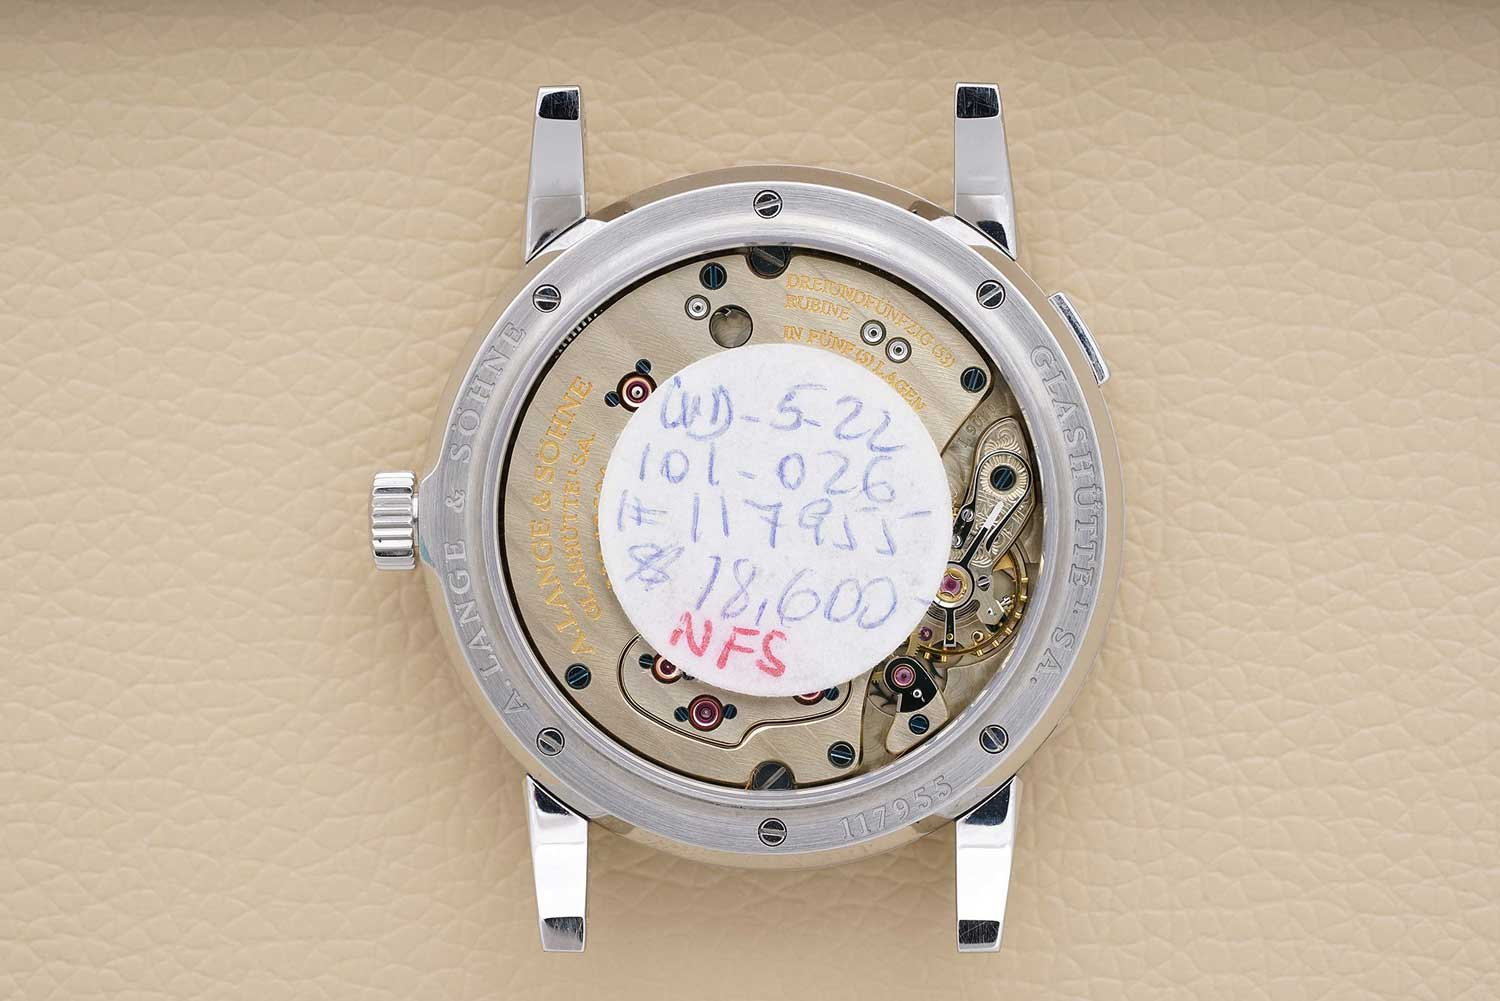 This particular example of the stainless steel Lange 1 was sold by Phillips at their New York Auction on 10 December 2019 and sold for USD 343,750 (Image: Phillips.com)